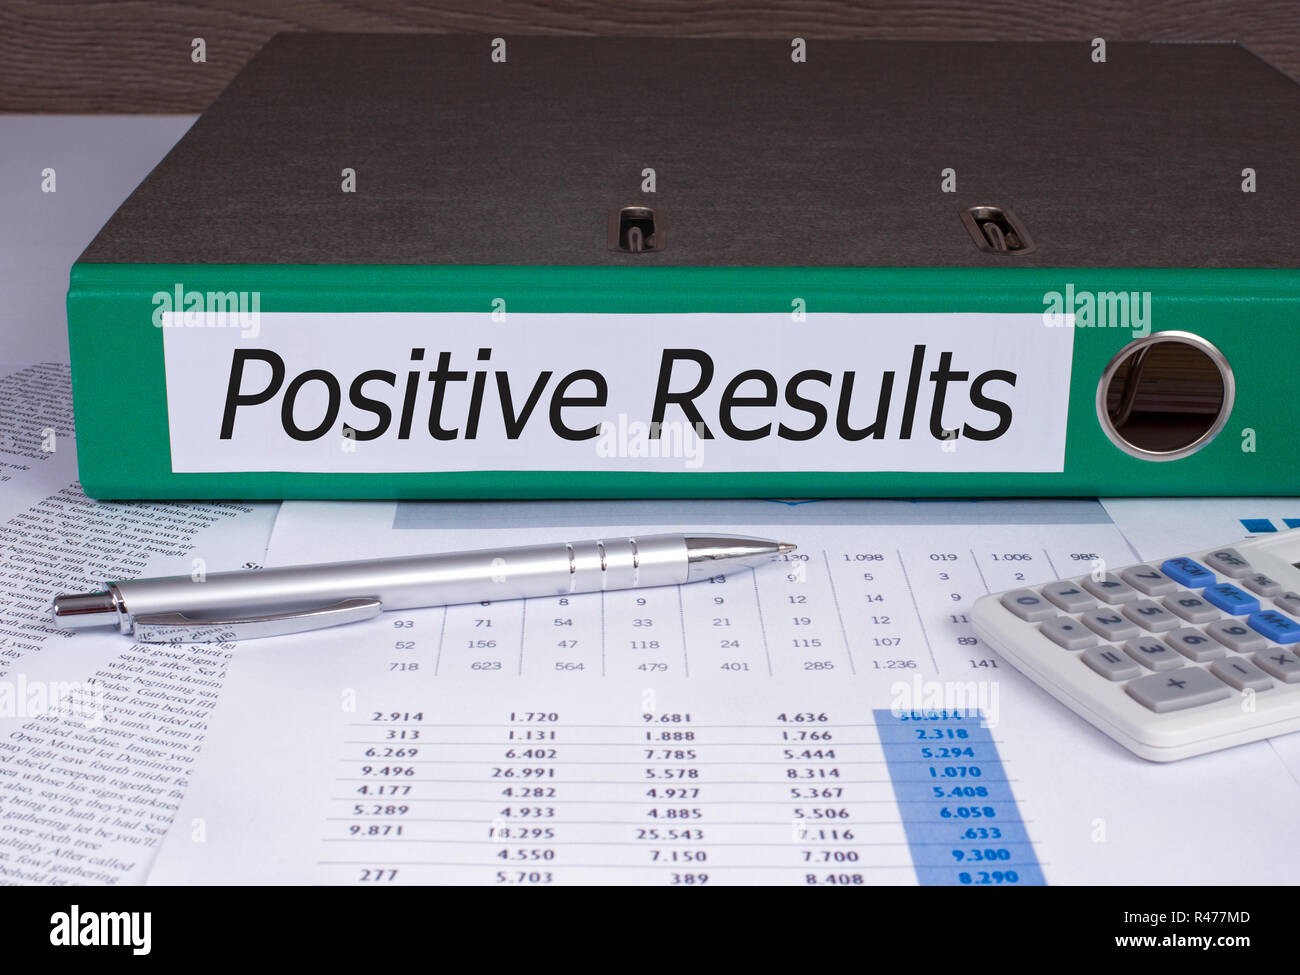 Positive Results Binder in the Office - Stock Image